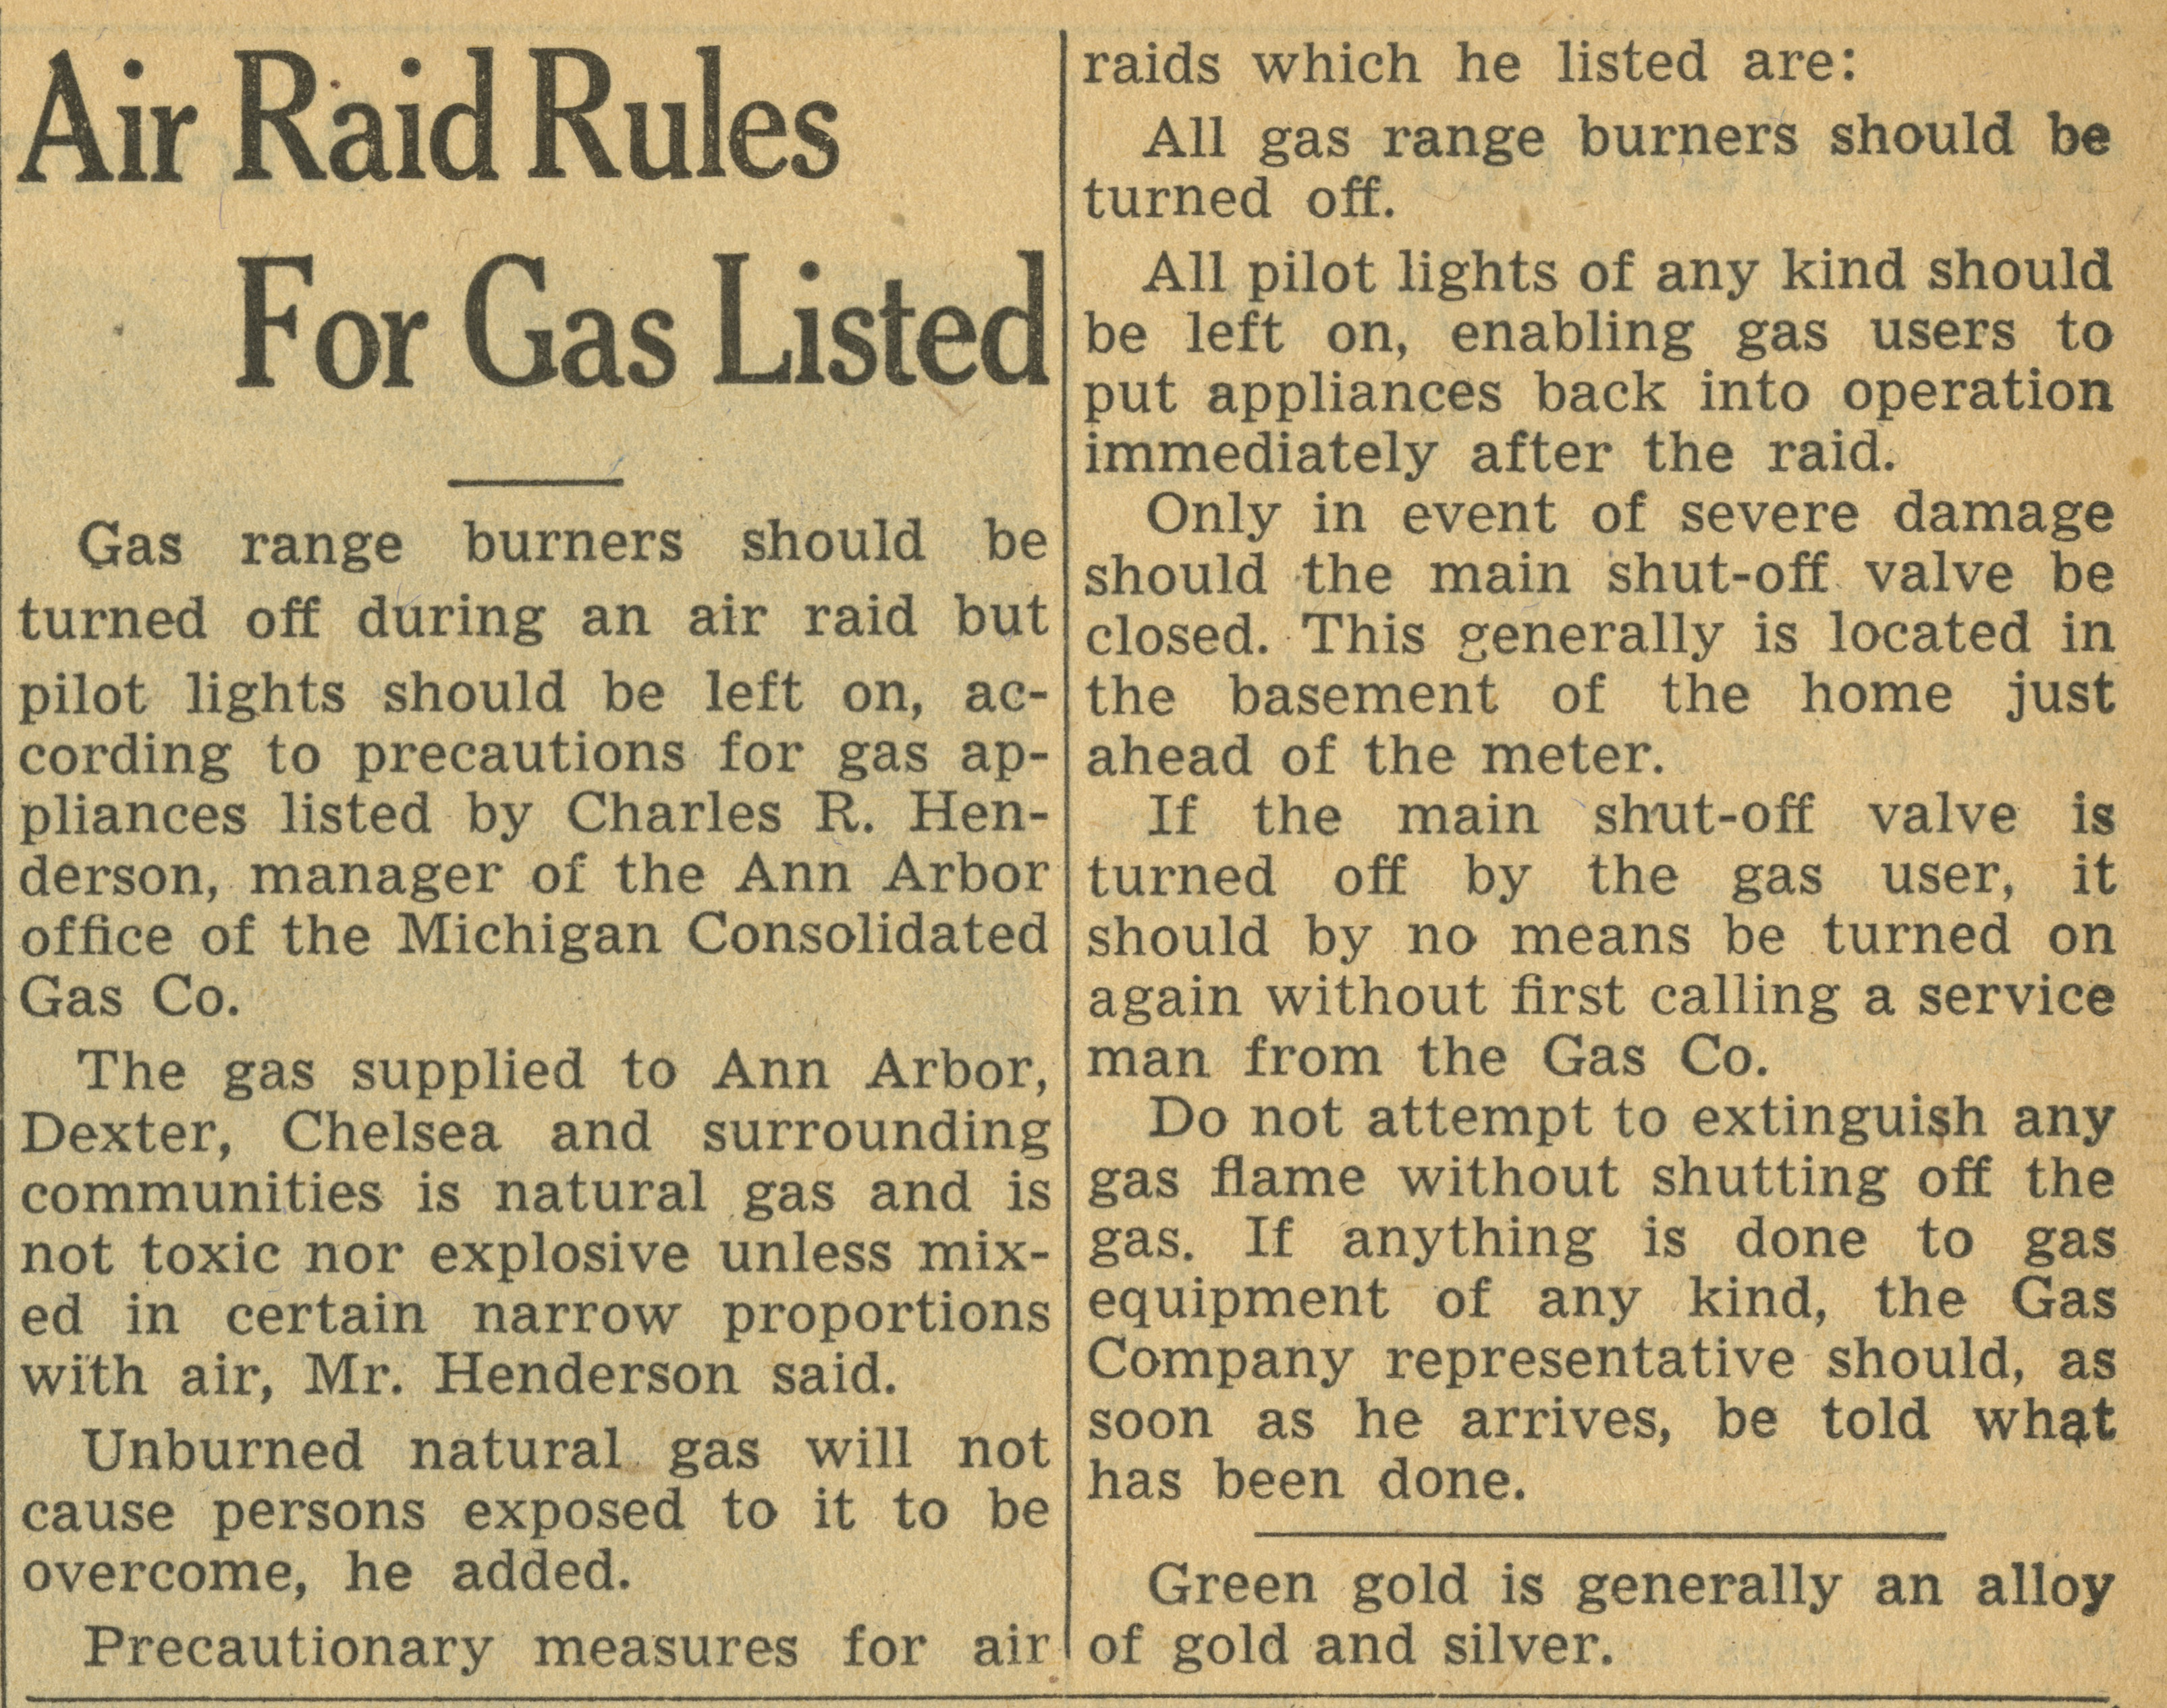 Air Raid Rules For Gas Listed image